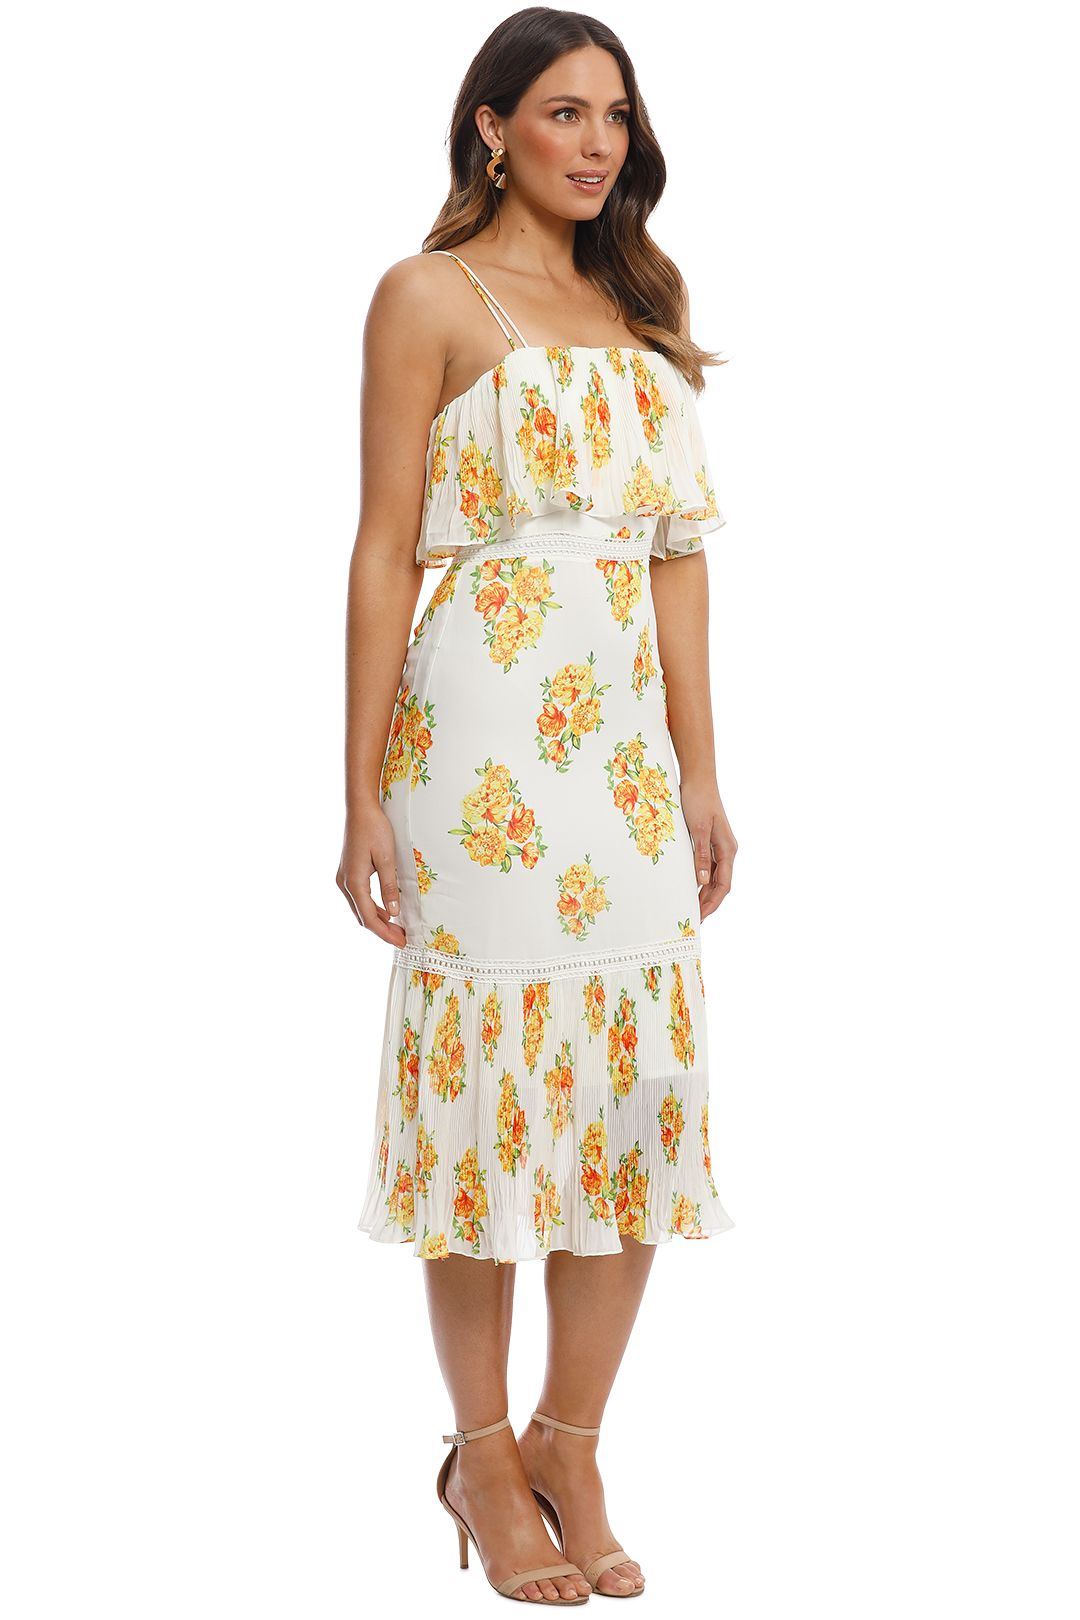 Cooper St - Darjeeling Fitted Layered Dress - Ivory Print - Side